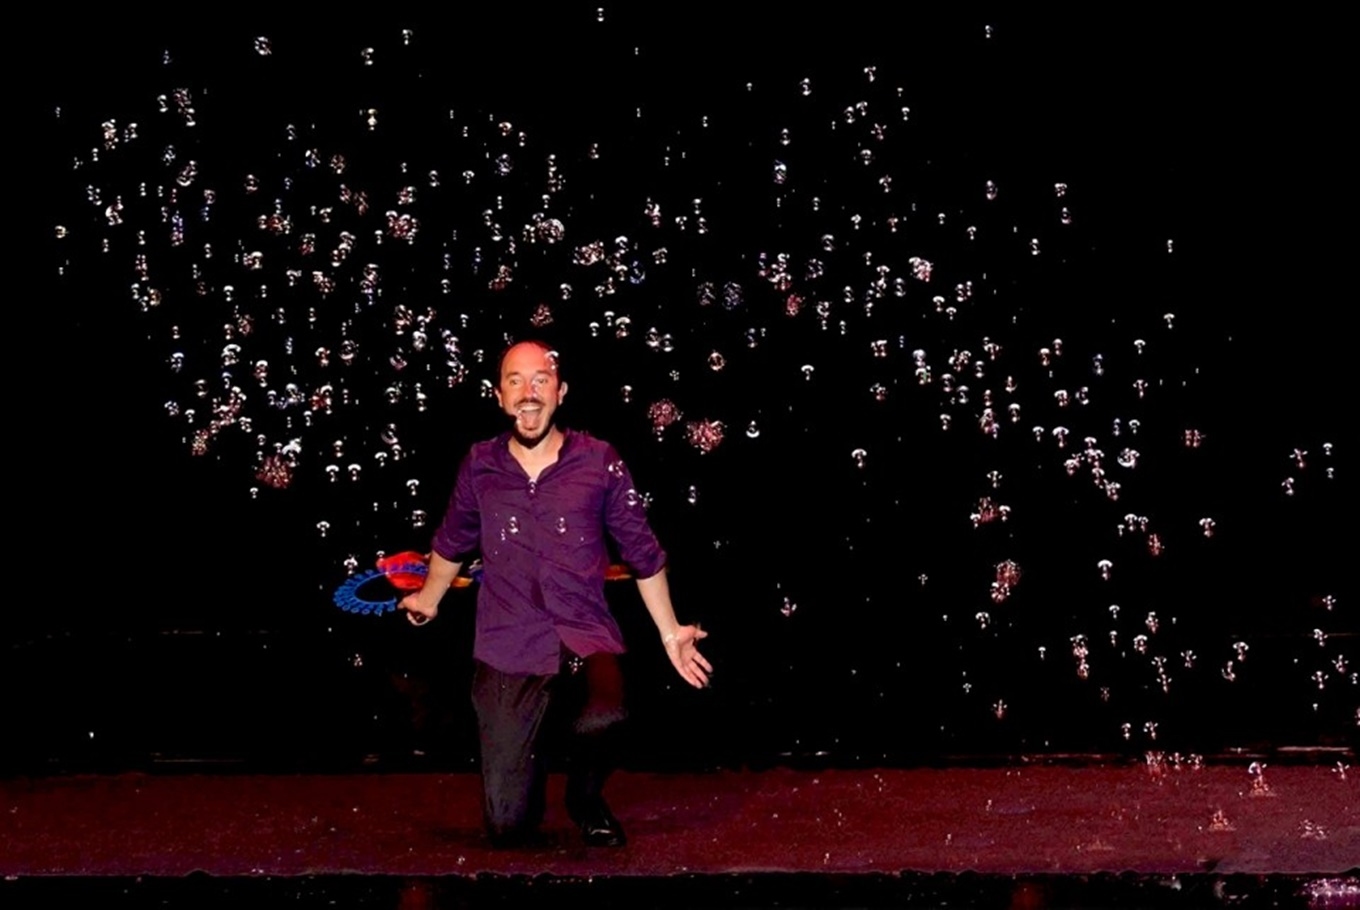 Espectáculo con pompas 'Magic Bubble' en Teatro Sanpol (Madrid)